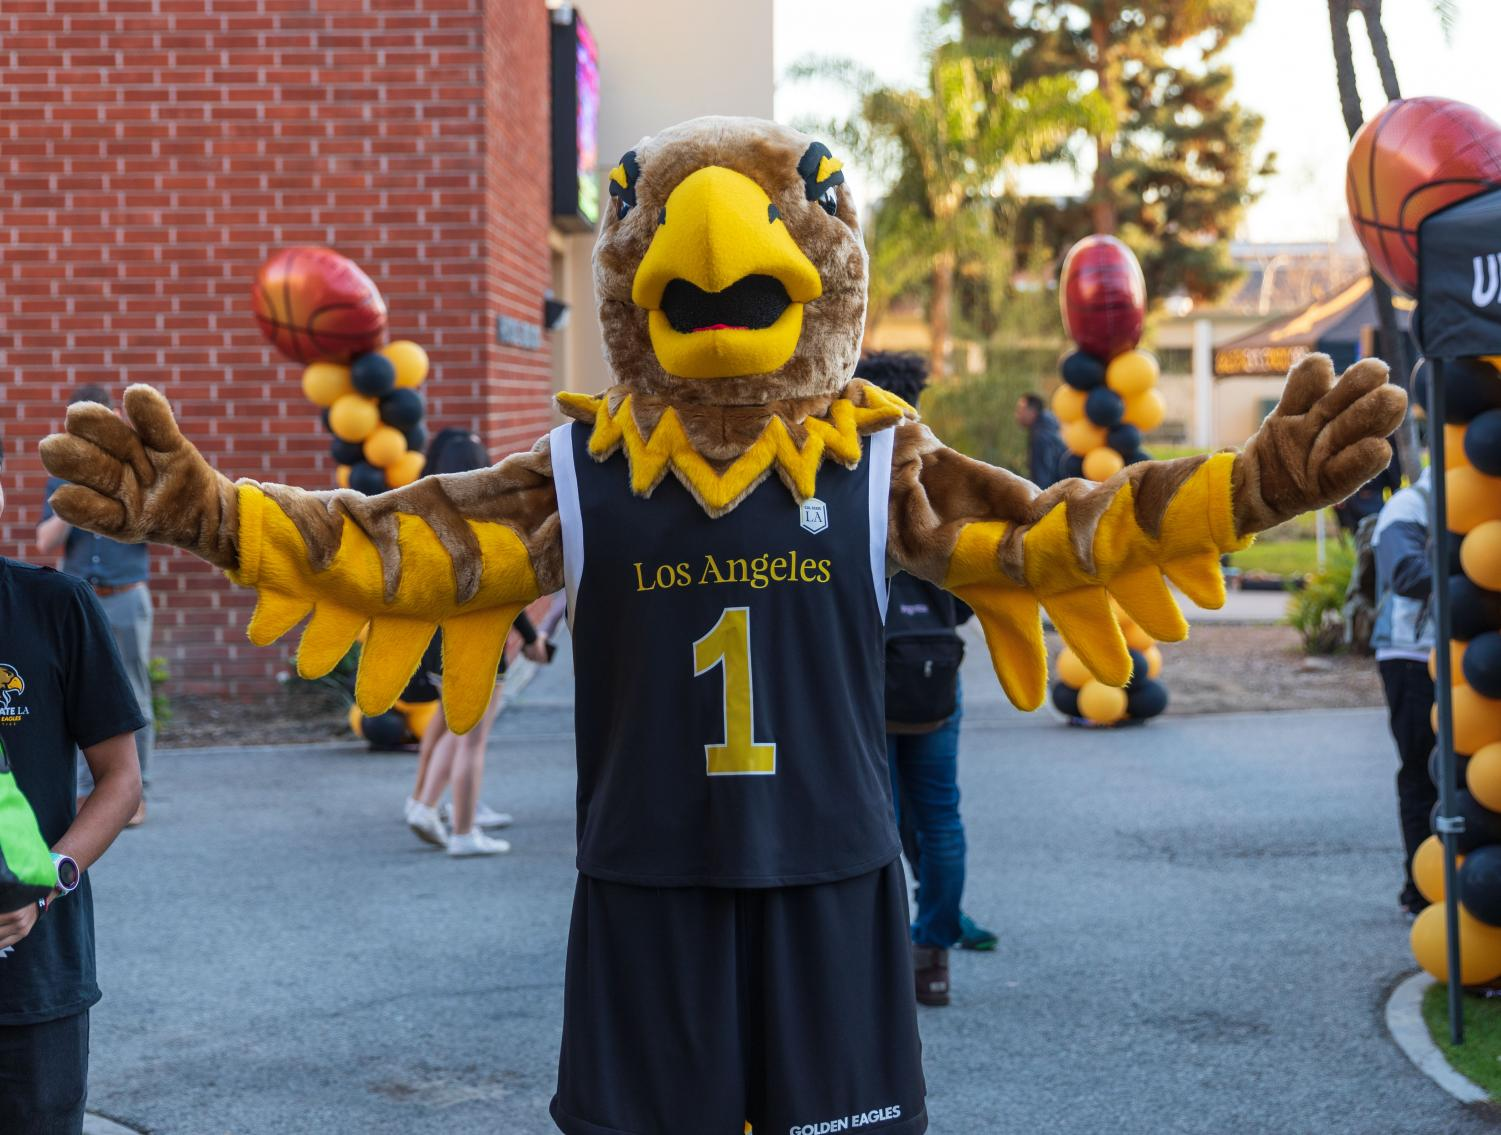 Eddie the Eagle, Cal State LA's mascot, poses for a photo in front of the Eagle's Nest Gym.